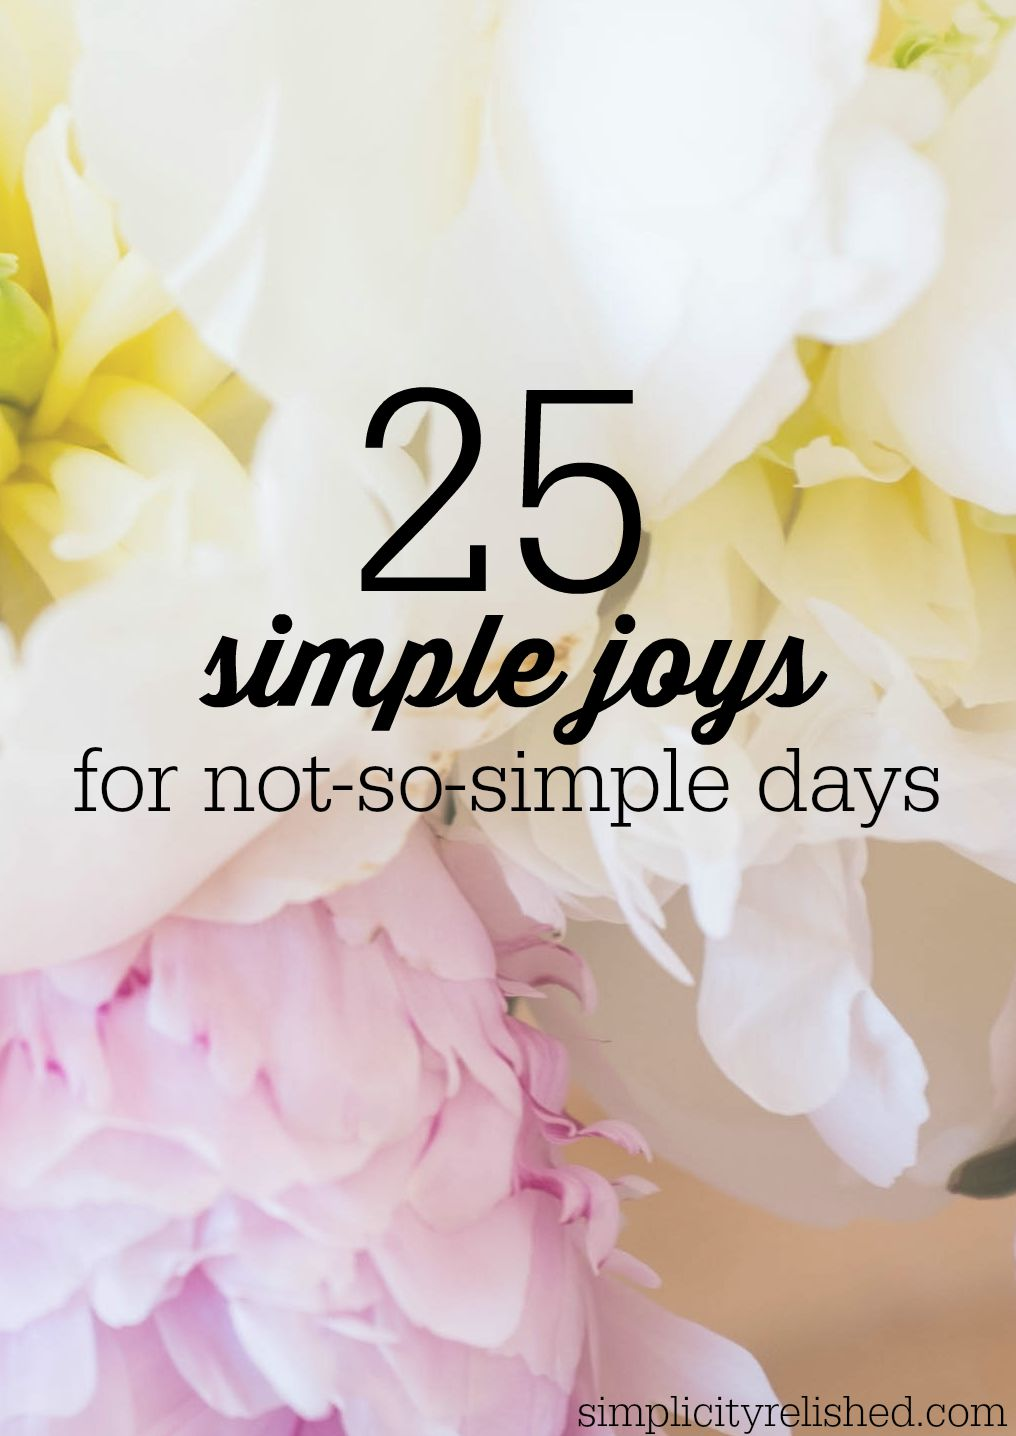 25 simple joys for not-so-simple days